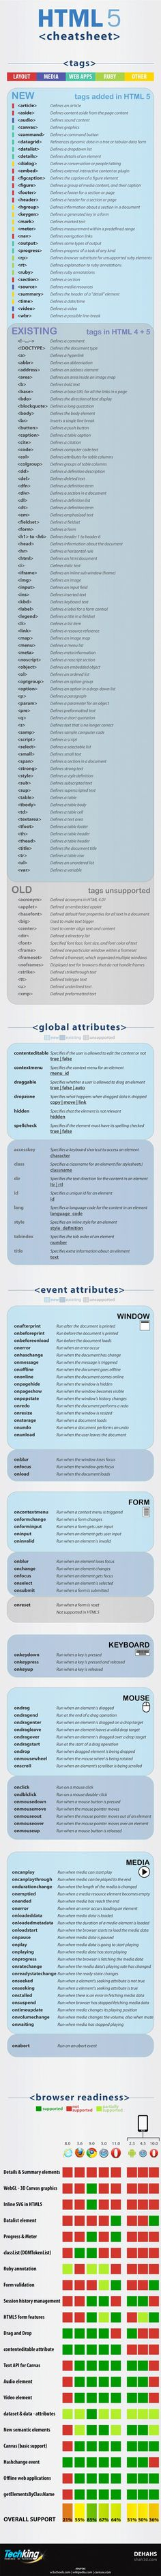 Infographic: Ultimate HTML5 Cheatsheat. But note that hgroup is deprecated as well.